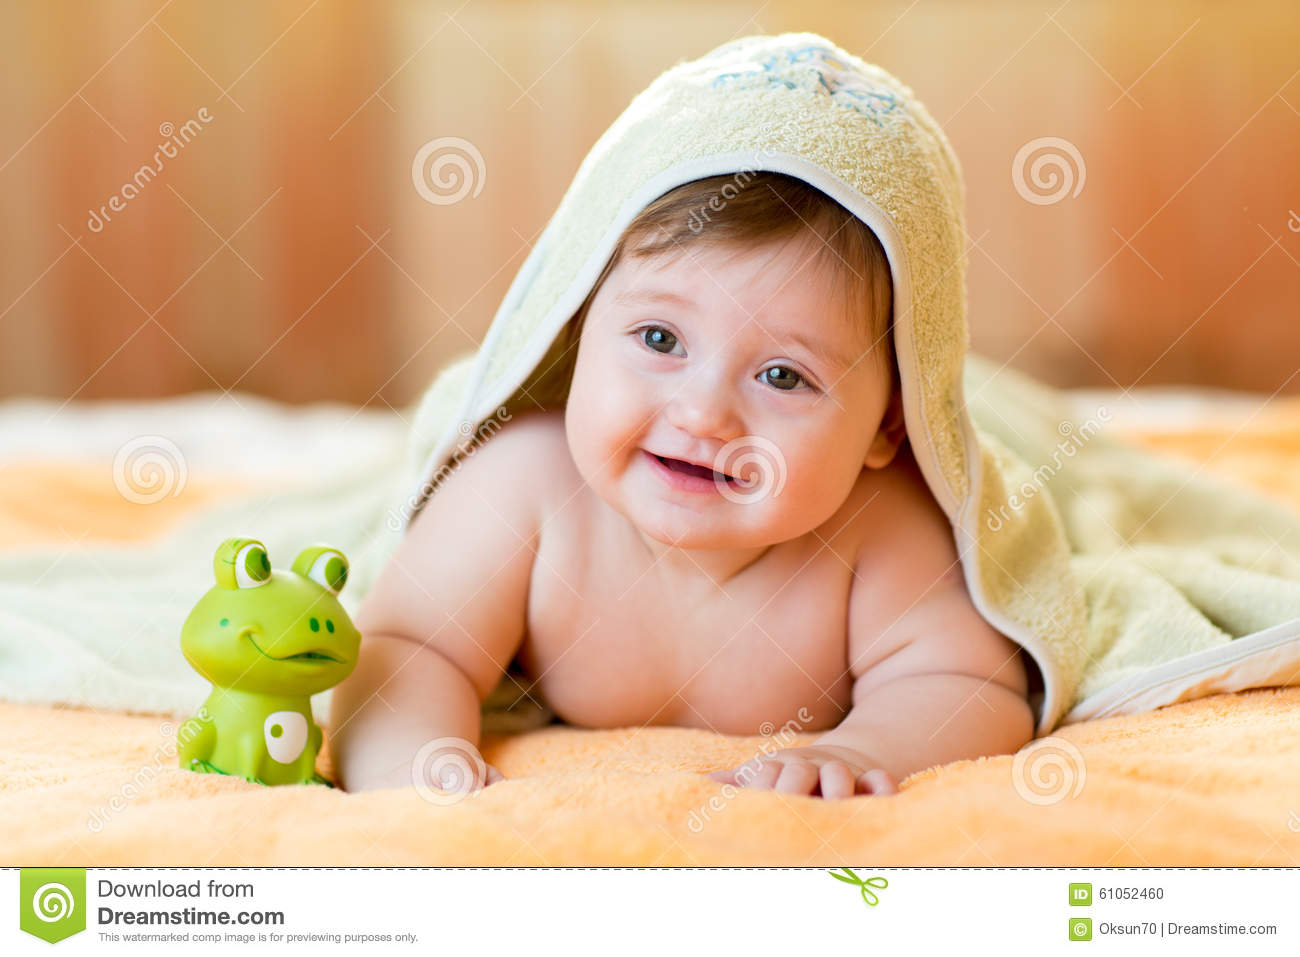 Cheerful baby child under a hooded towel after